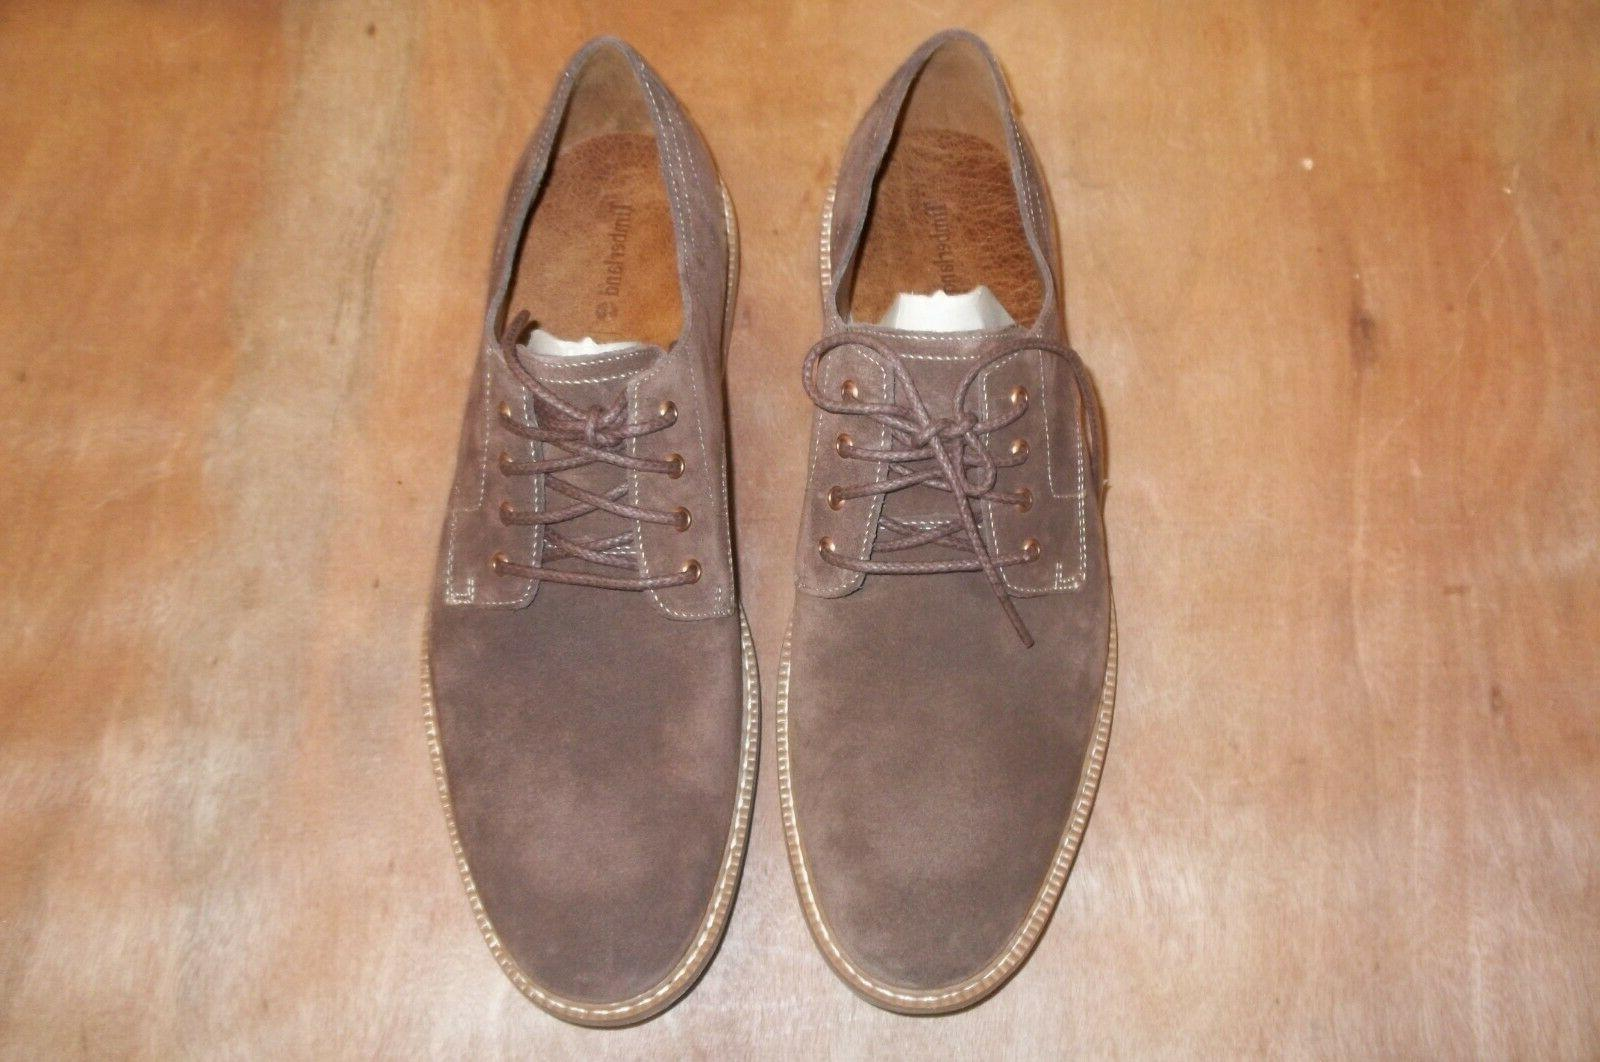 naples trail oxford shoes suede leather men